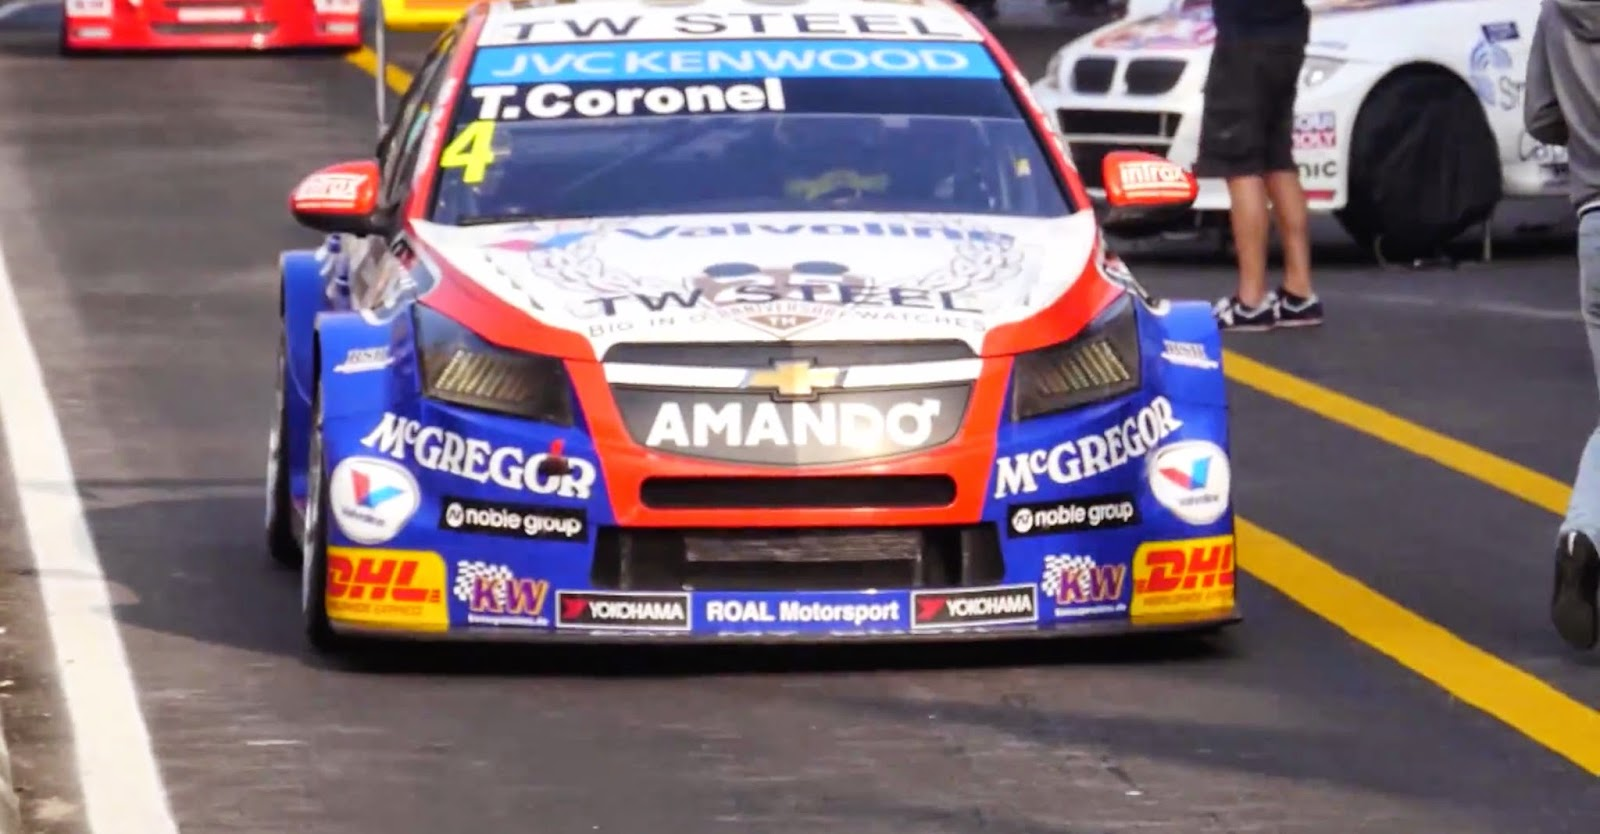 Tom Coronel Axis Of Oversteer Macau Wtcc Nsfw Update With Tom Coronel